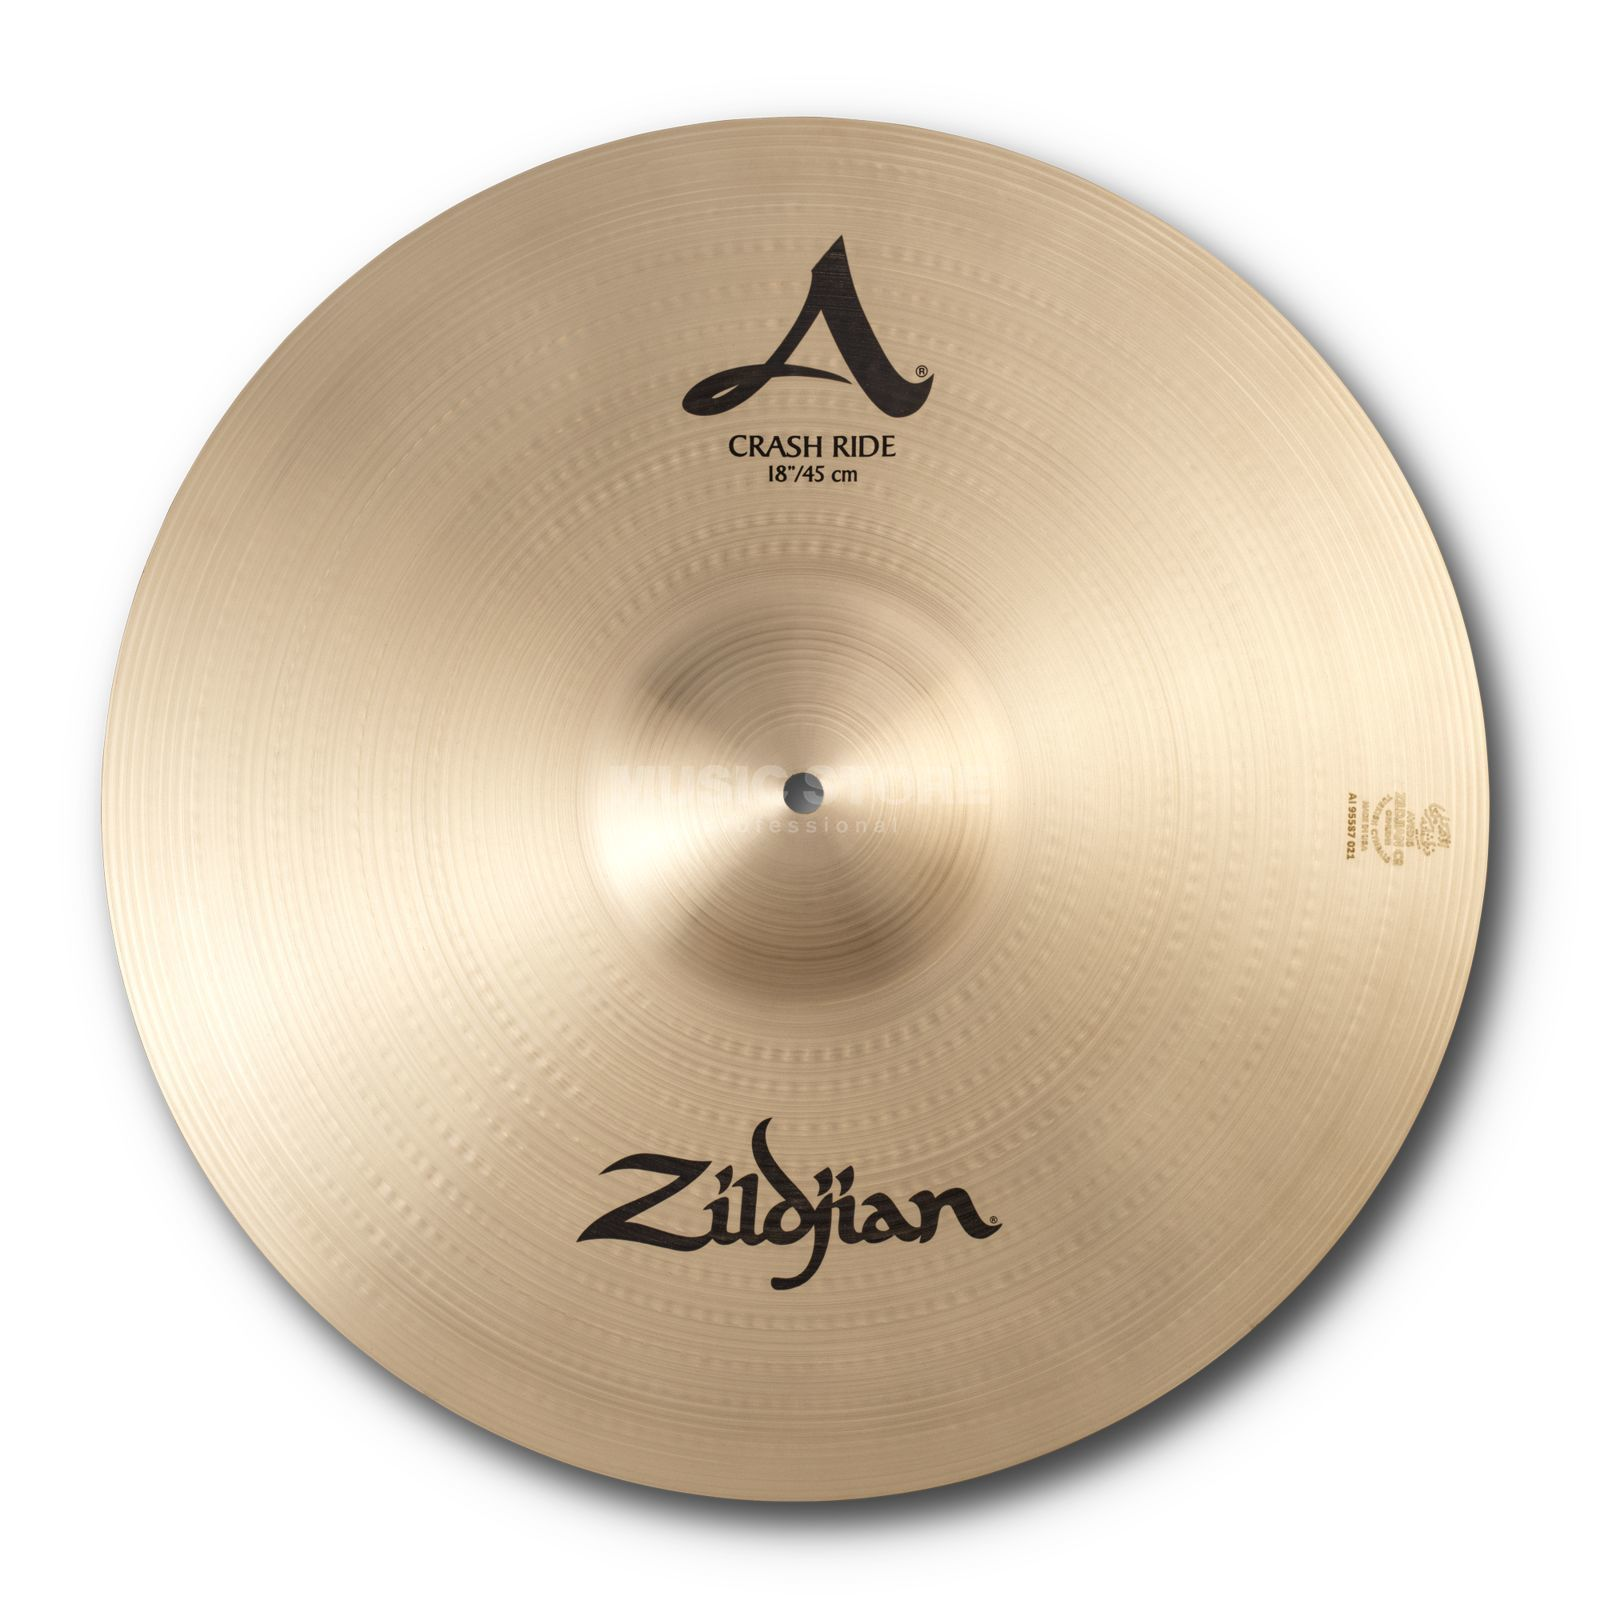 "Zildjian Avedis Crash Ride 18"", finition traditionnelle Image du produit"